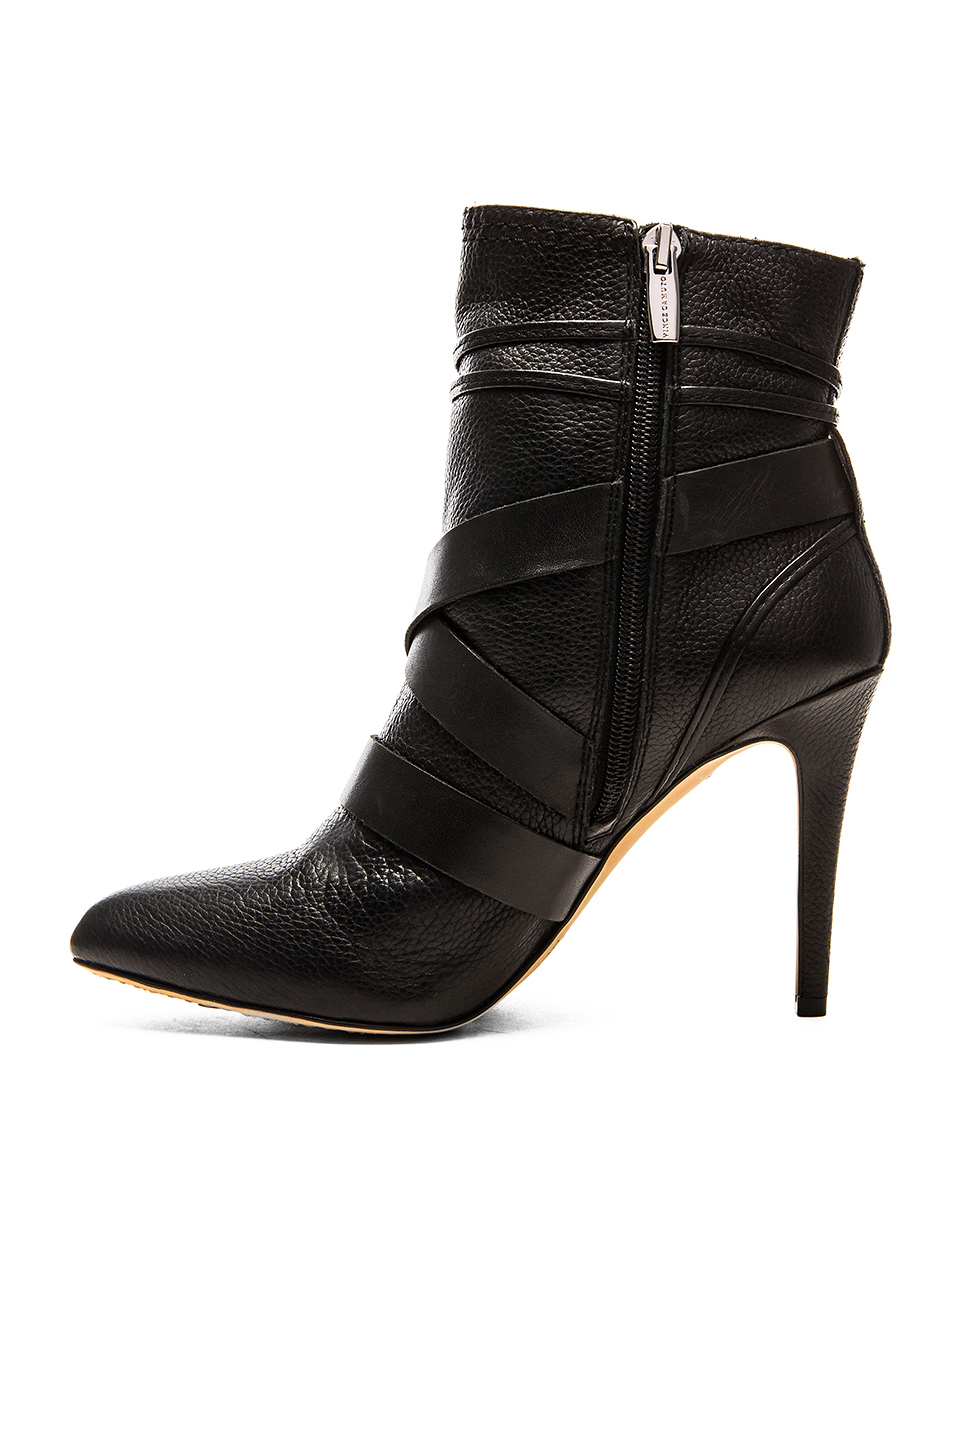 Vince Camuto Leather Barin High Heel Ankle Boots In Black